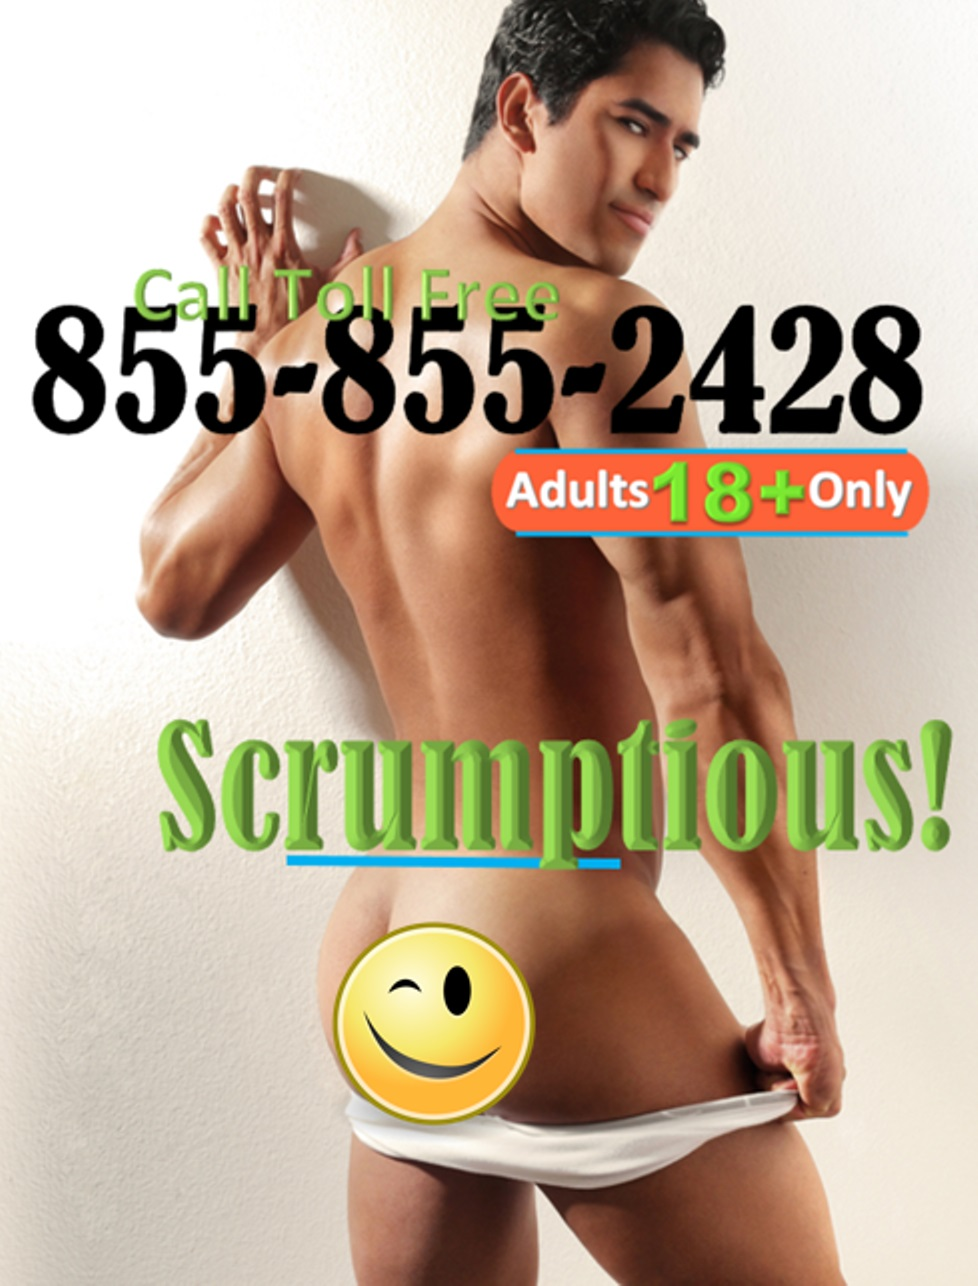 Free Trial Gay Chat Line Numbers